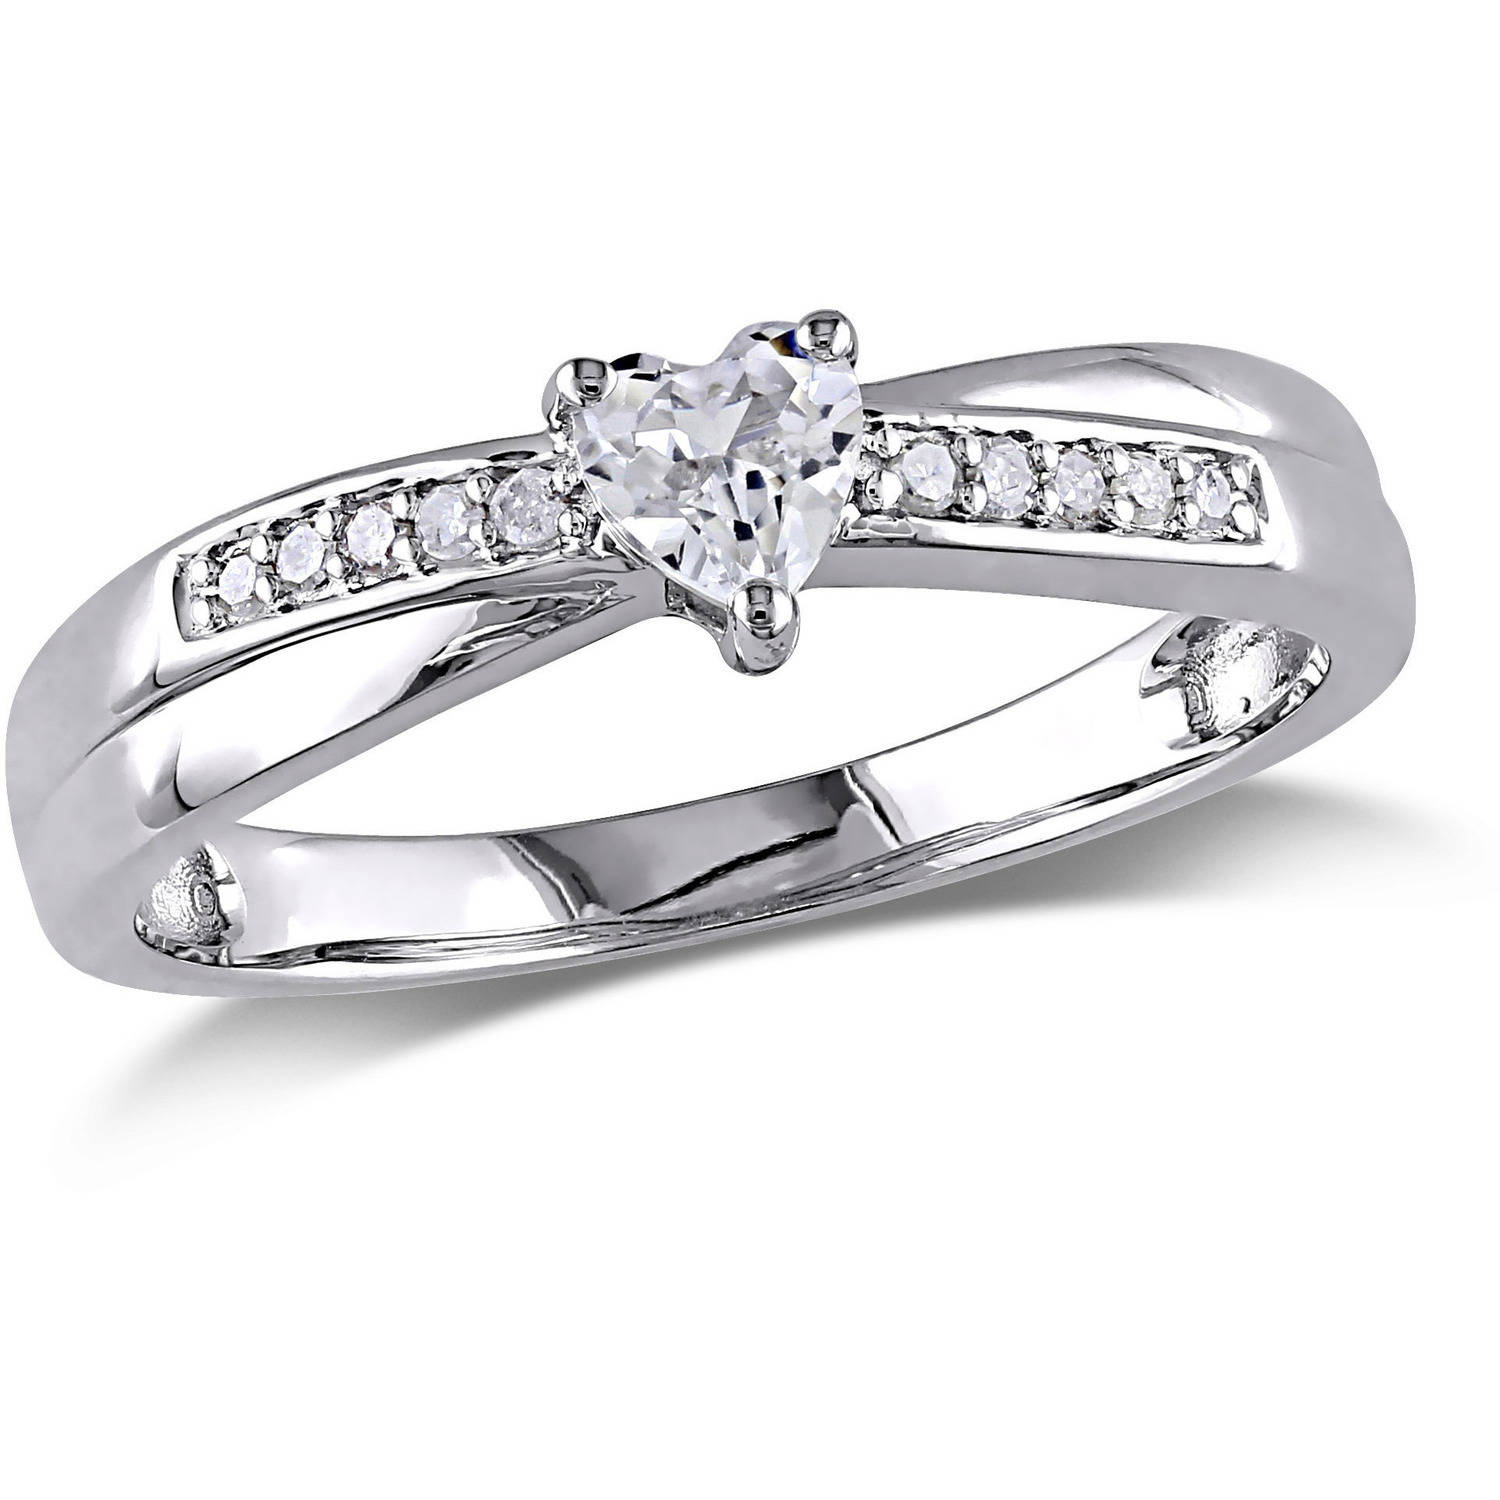 Miabella 1/4 Carat T.G.W. Created White Sapphire and Diamond-Accent Engagement Ring in Sterling Silver